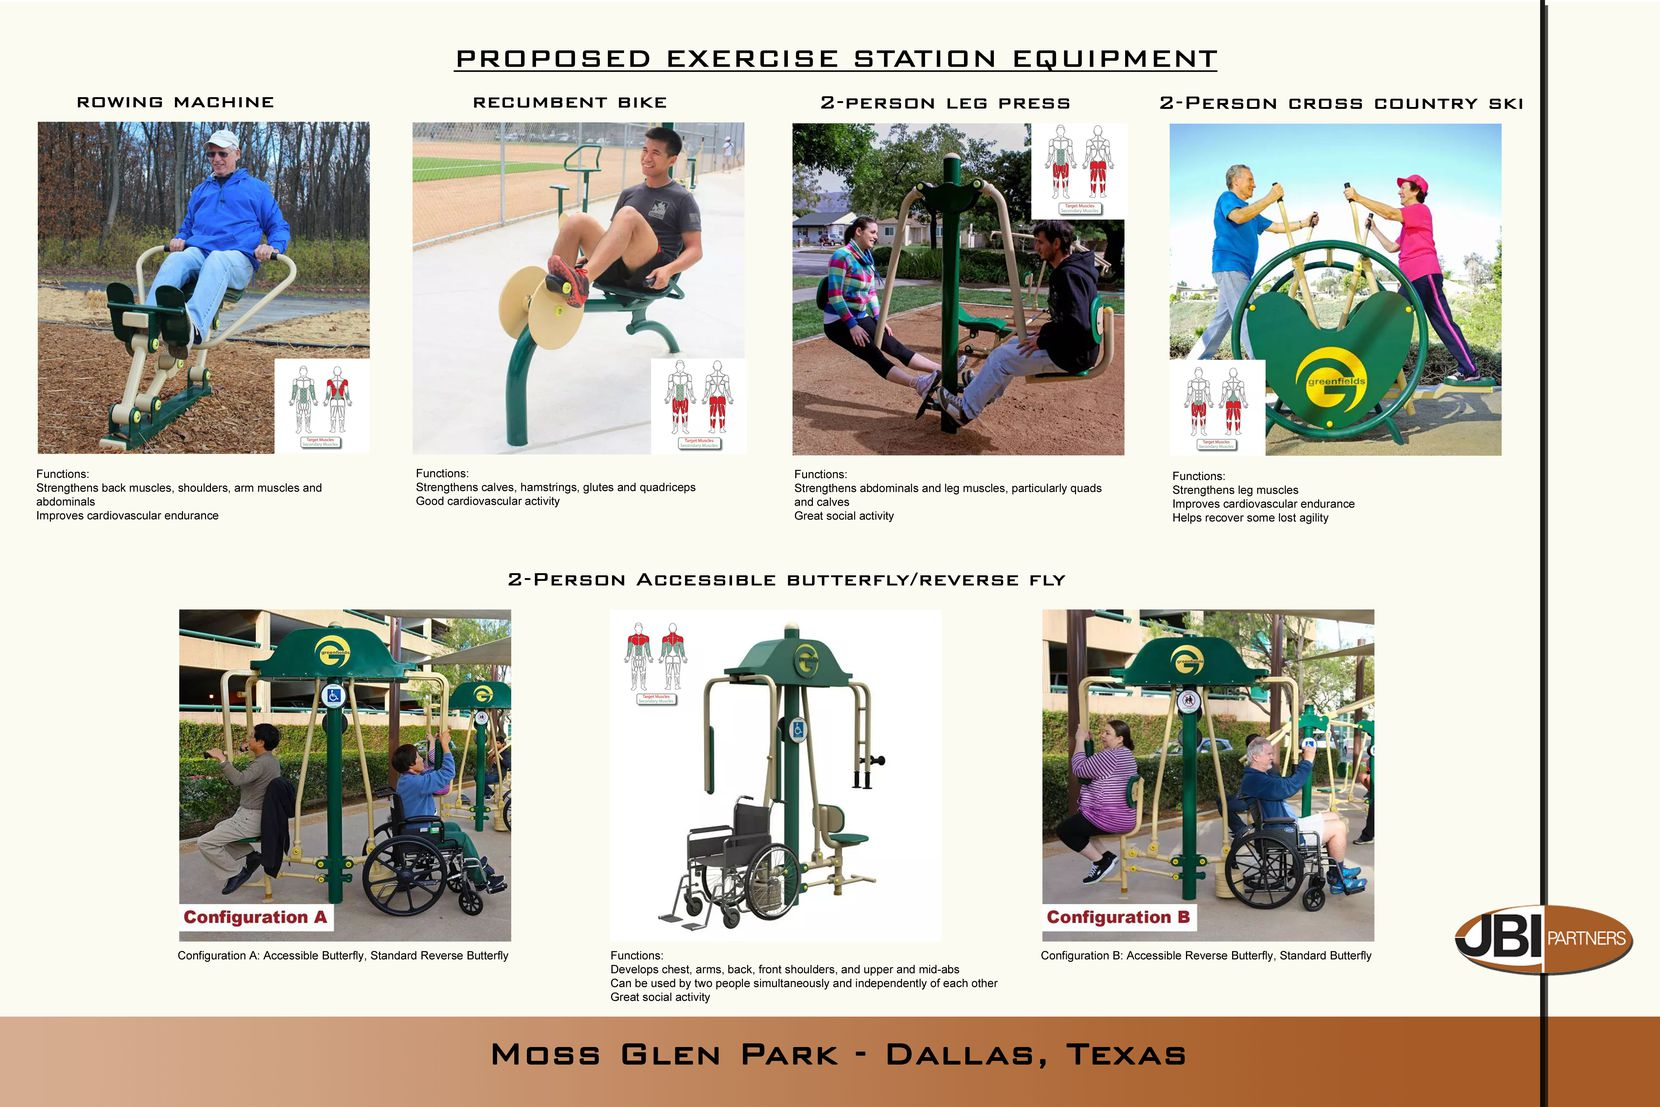 Only a handful of city parks have exercise stations. This is what's planned for Moss Glen Park.